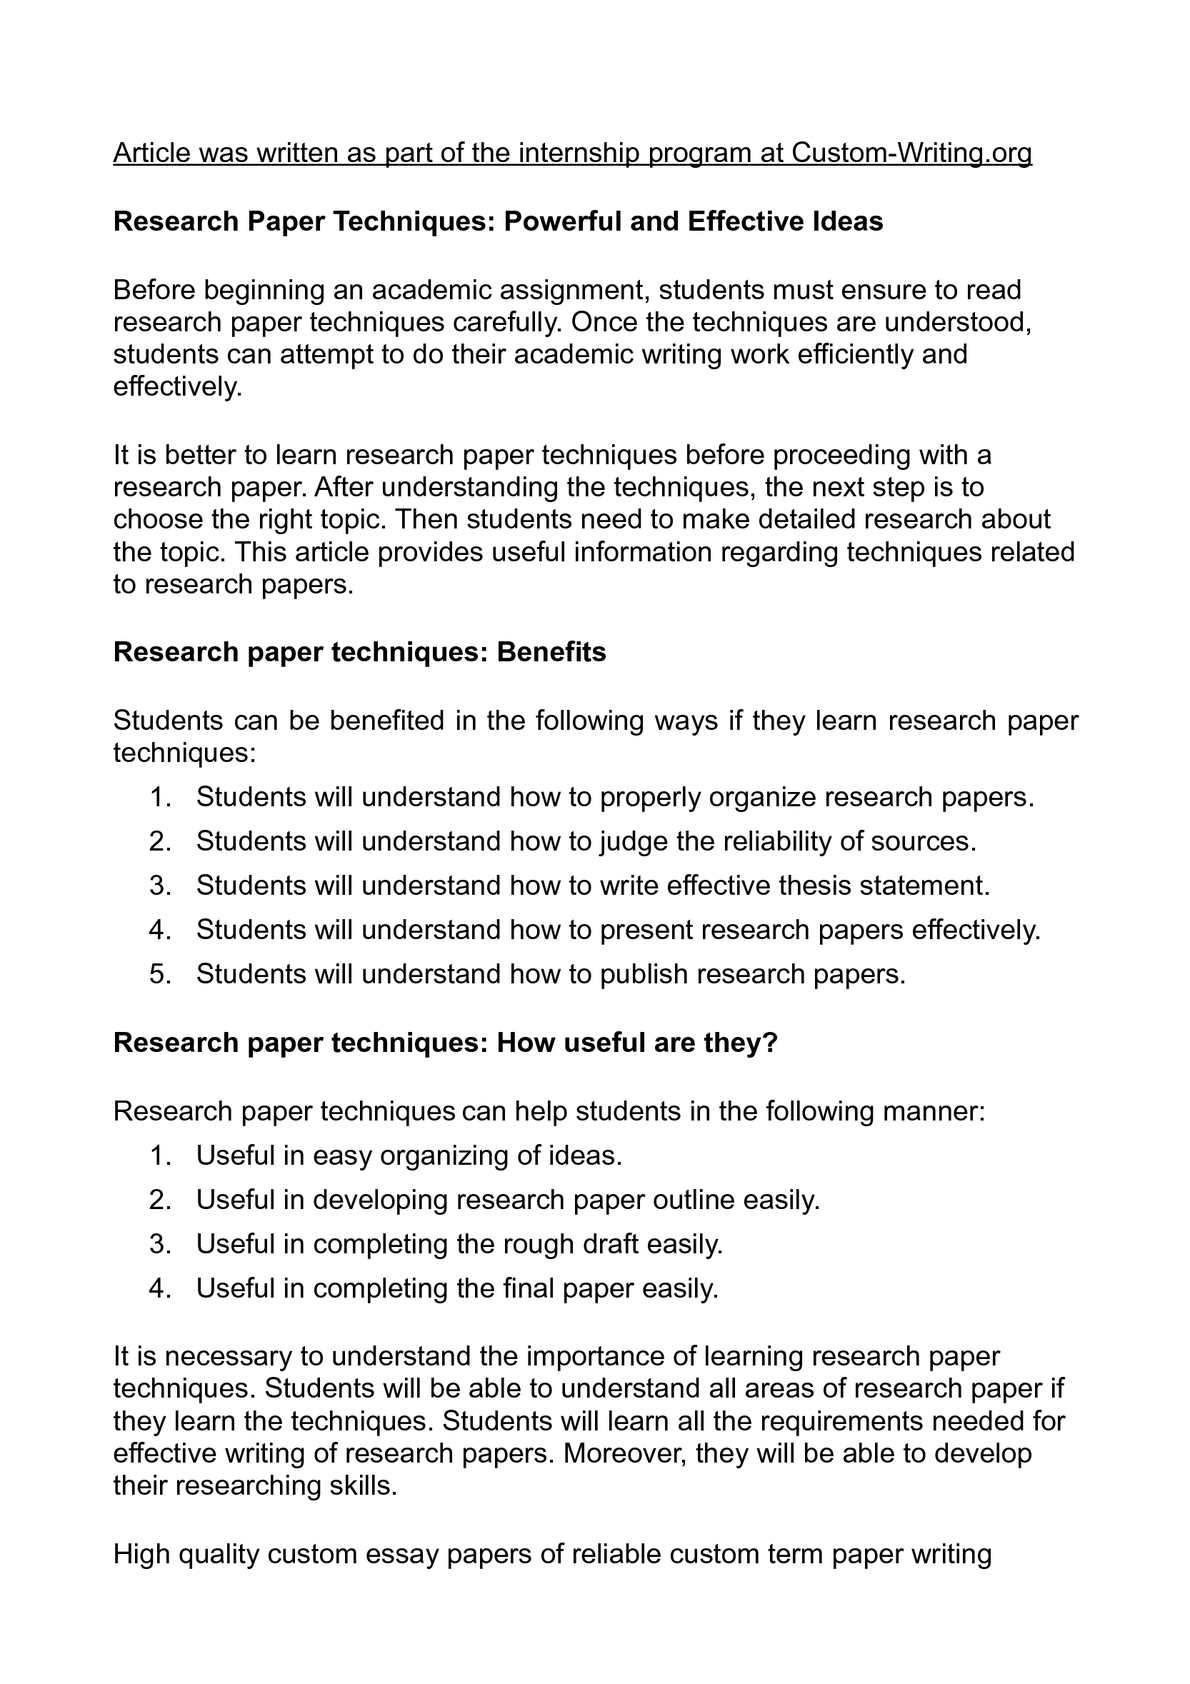 006 P1 Research Paper Organizing Unforgettable A Outline Information In An For Full